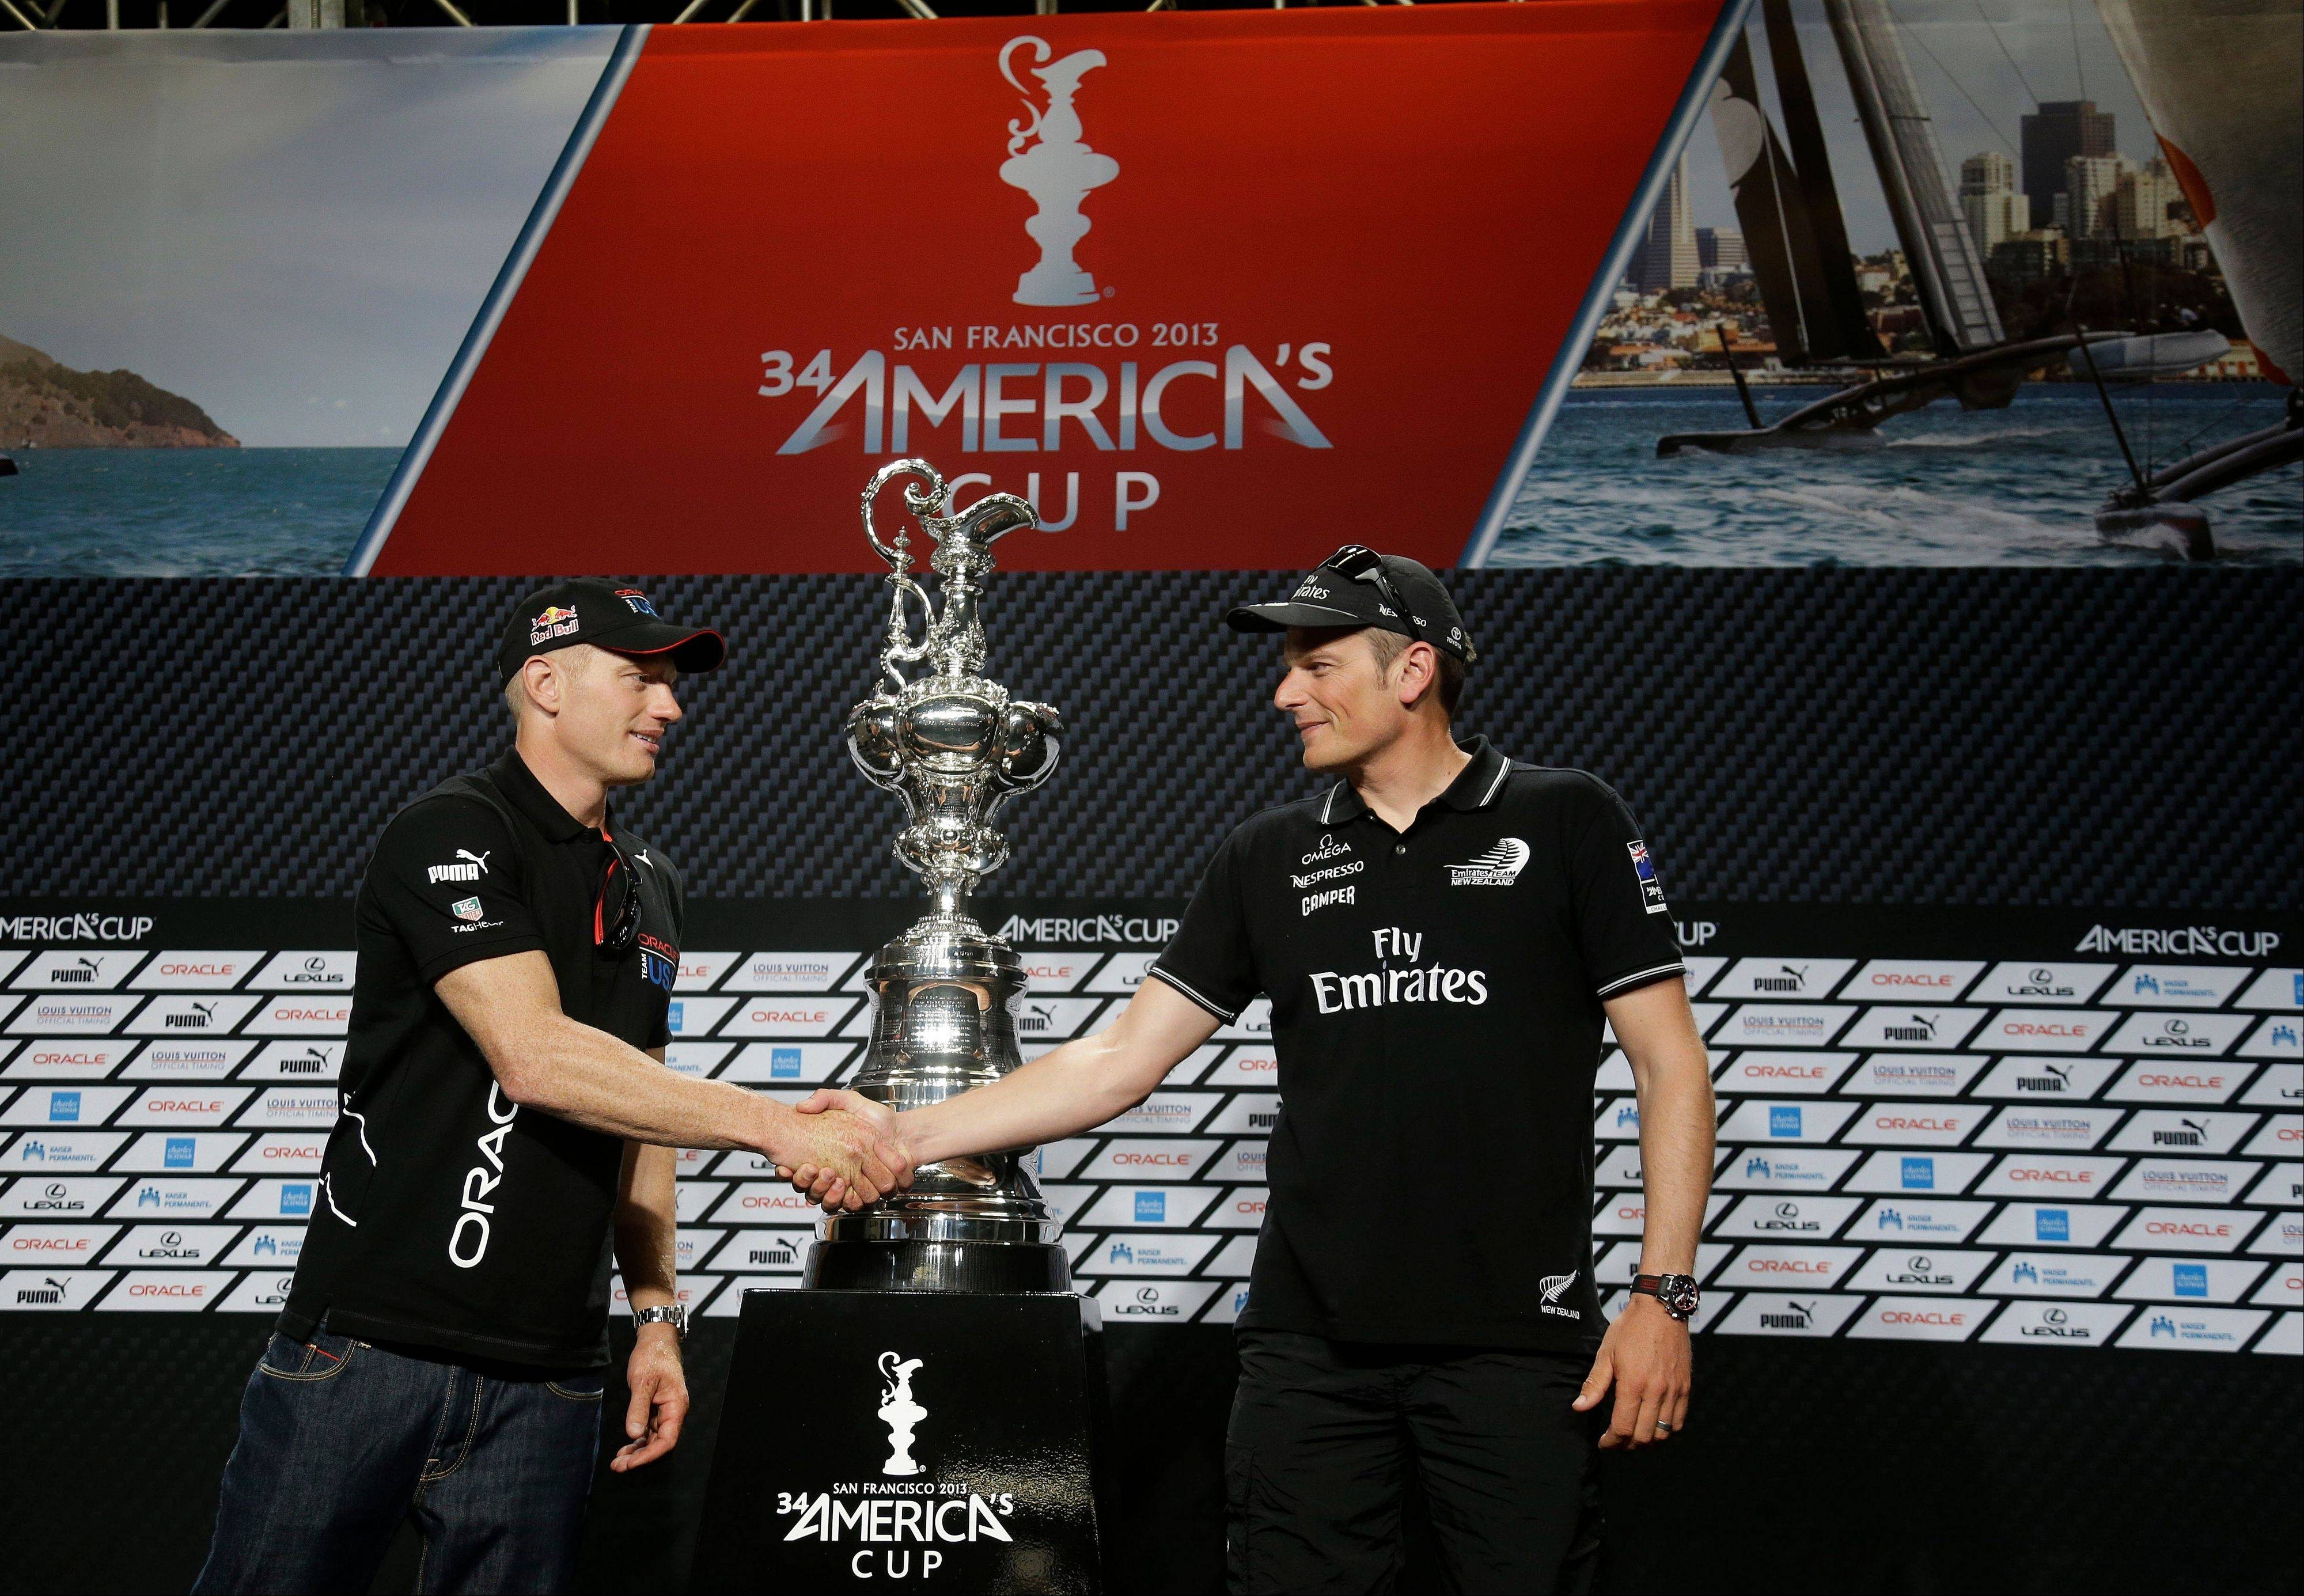 Jimmy Spithill, left, skipper of Oracle Team USA and Dean Barker, right, skipper of Emirates Team New Zealand shake hands while posing with the America's Cup trophy following a news conference Thursday, Sept. 5, 2013, in San Francisco. The first races between Oracle Team USA and Emirates Team New Zealand are on Saturday. (AP Photo/Eric Risberg)